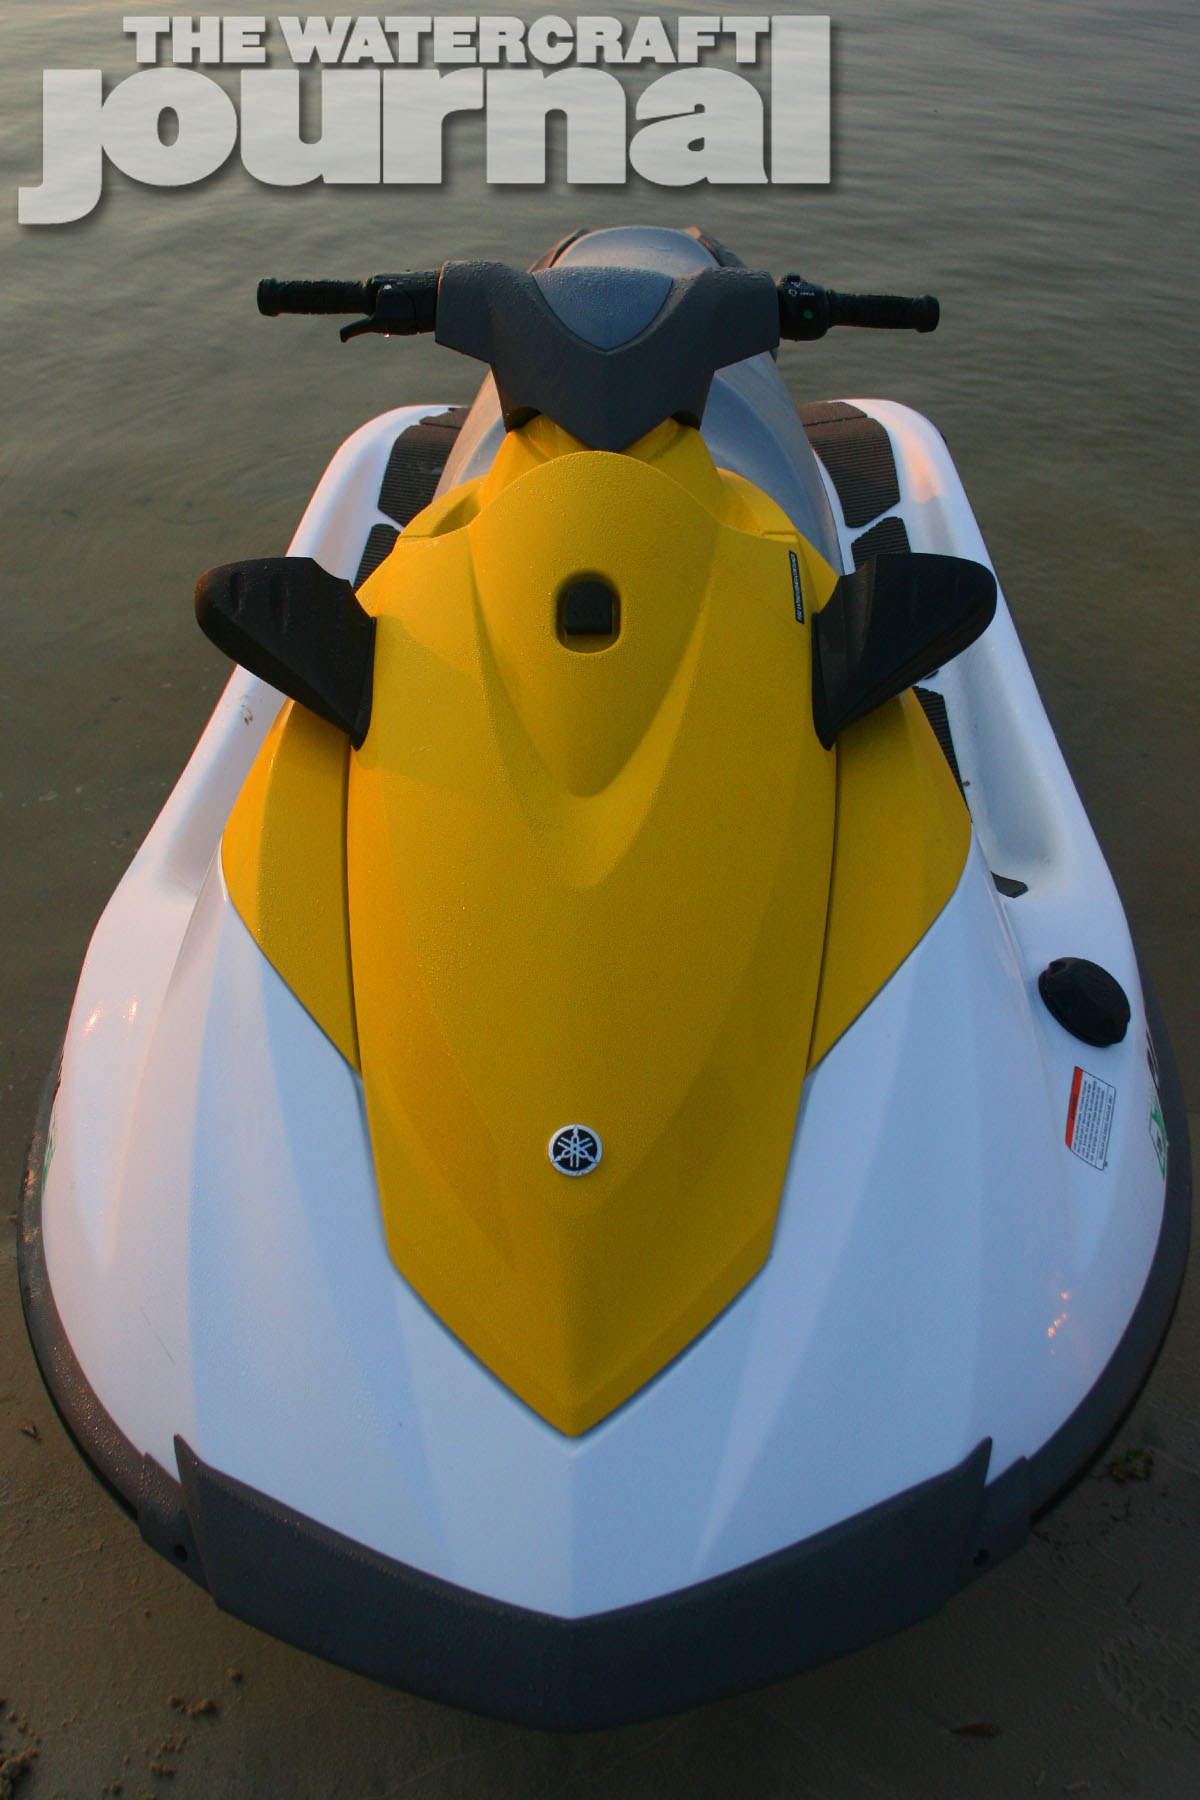 Gallery: Introducing The 2015 Yamaha WaveRunner Lineup | The